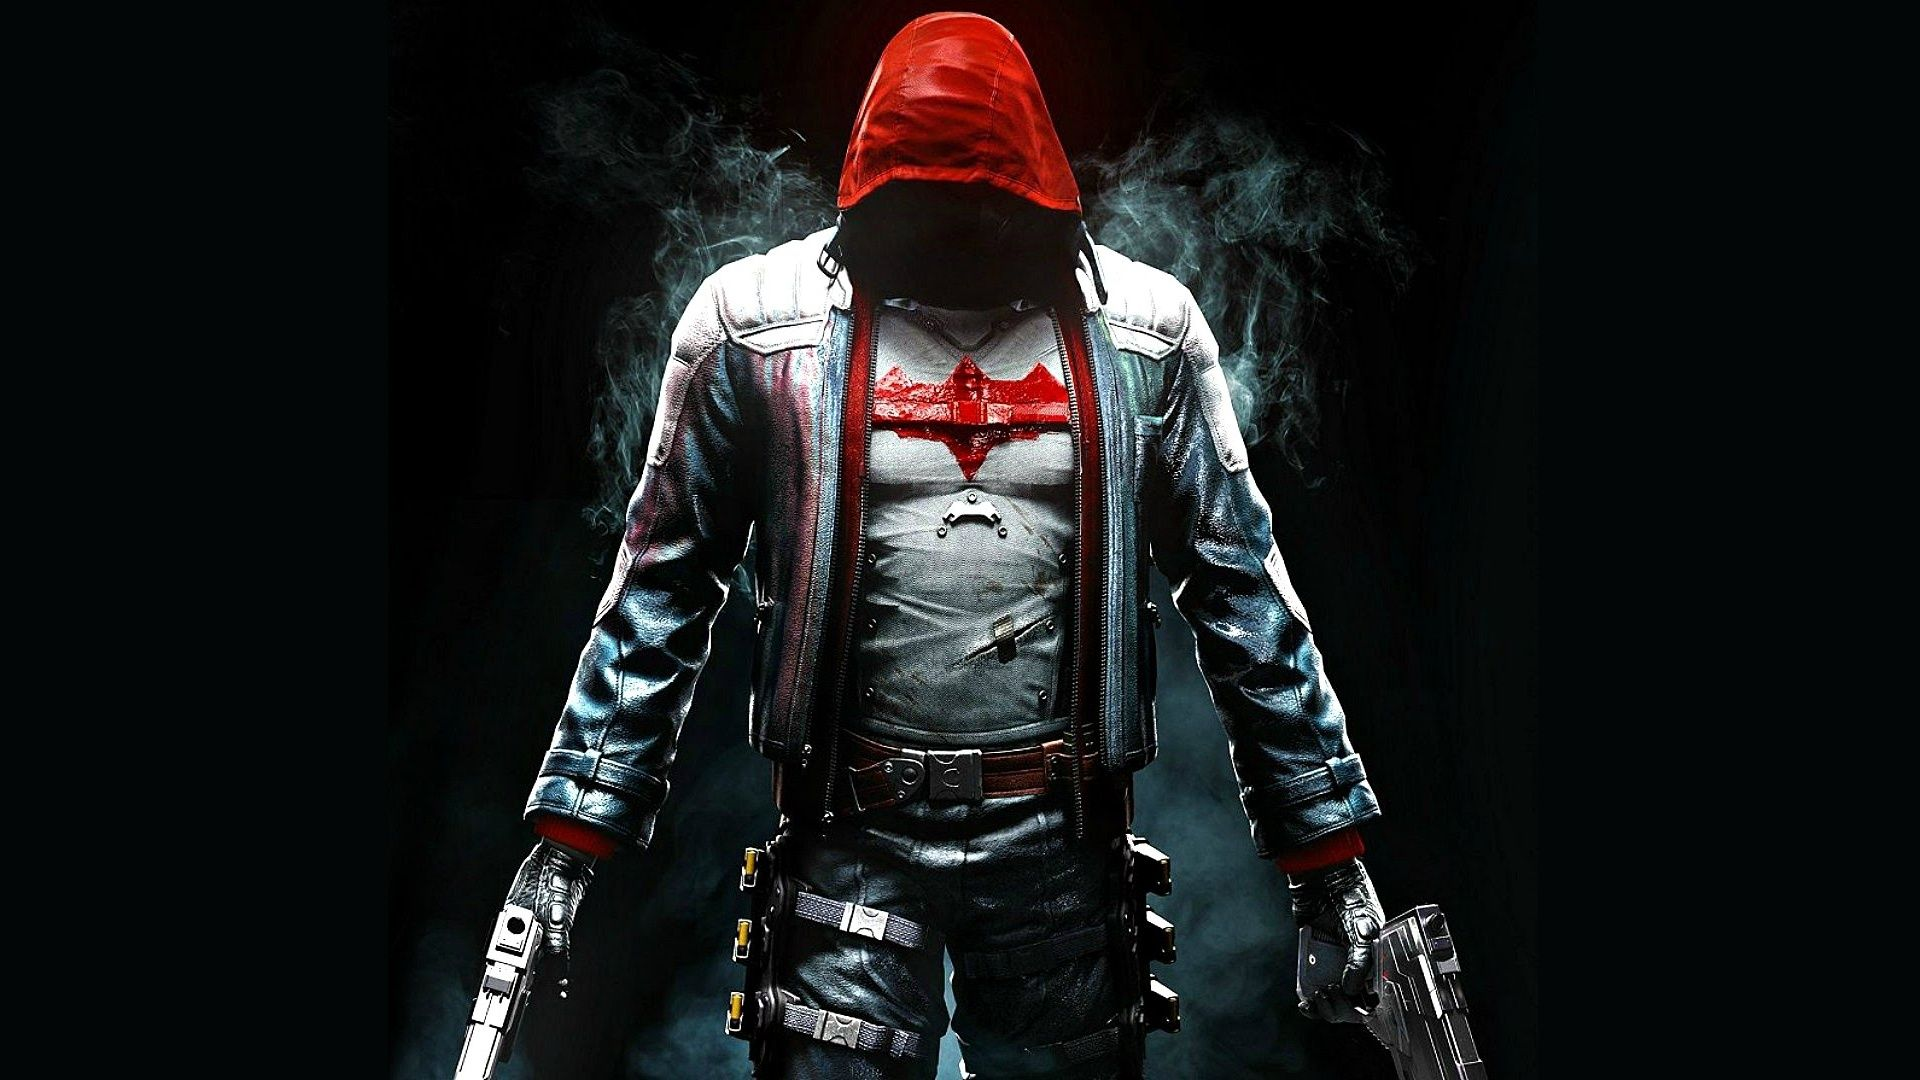 Red Hood is going to be playable as a Gamestop exclusive DLC and 1920x1080